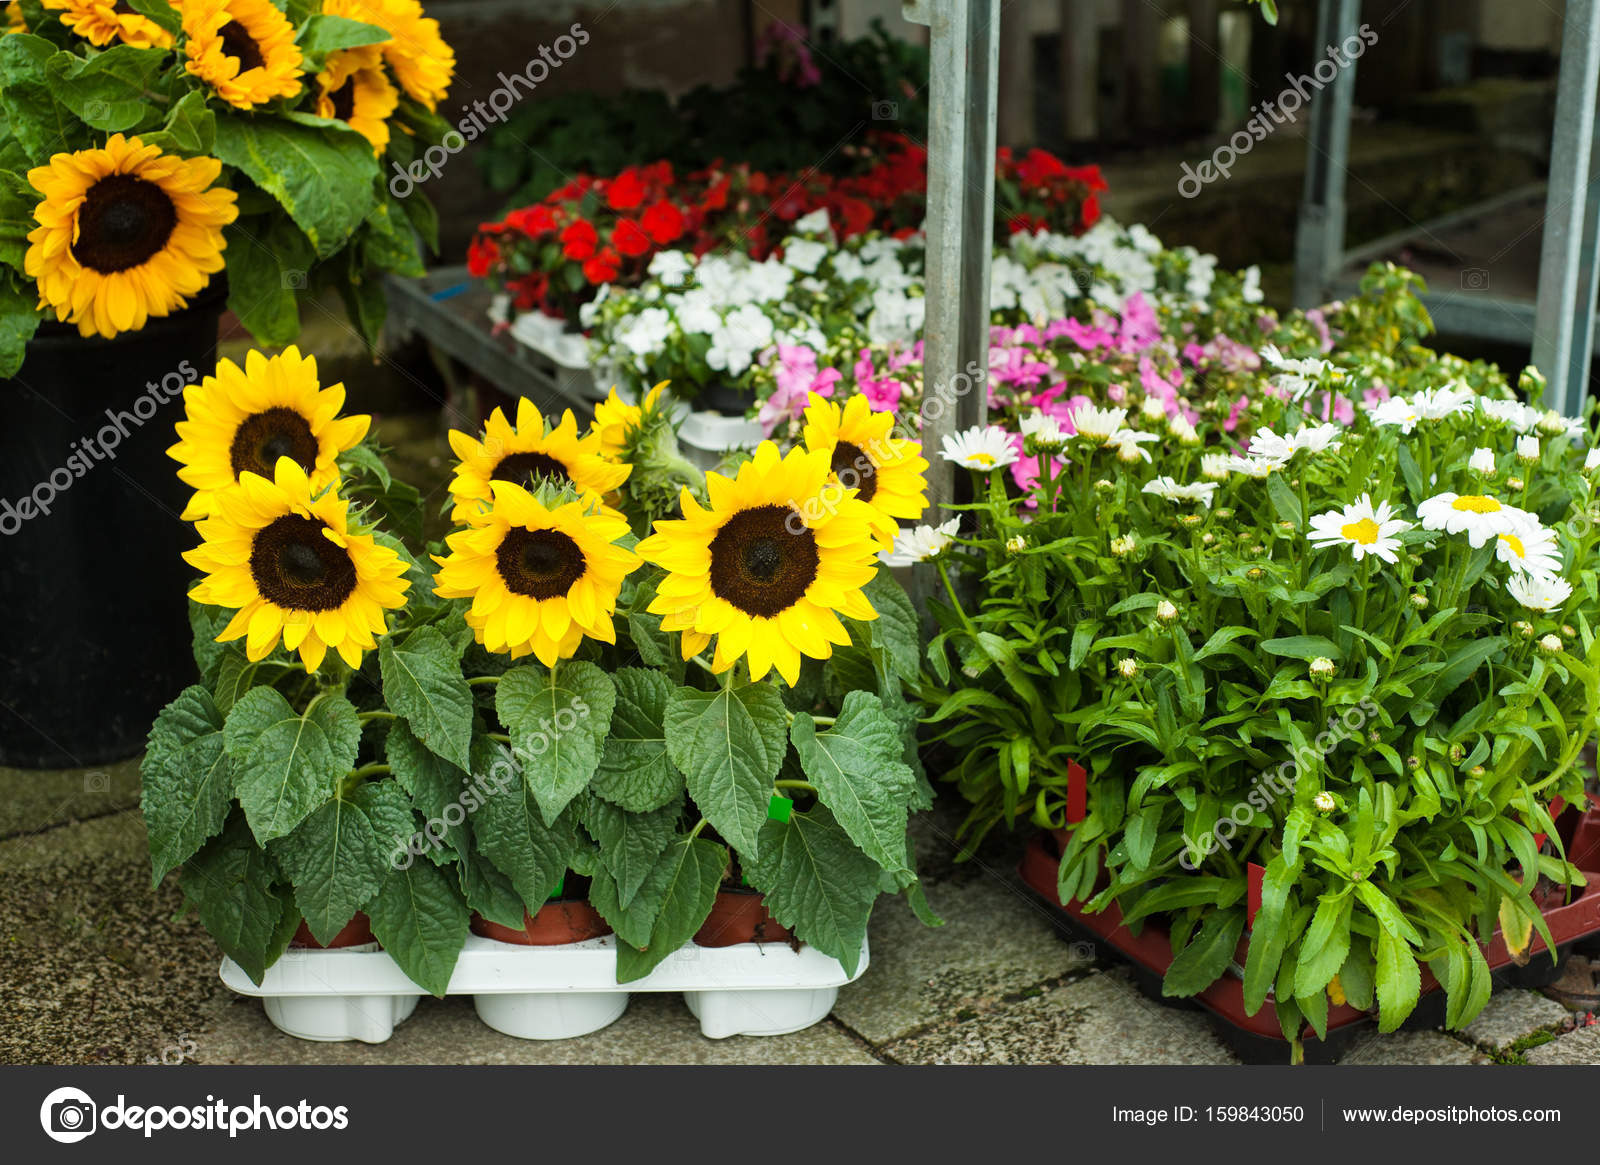 Sunflowers and daisies in flower shop stock photo irinabort sunflowers and daisies in flower shop stock photo izmirmasajfo